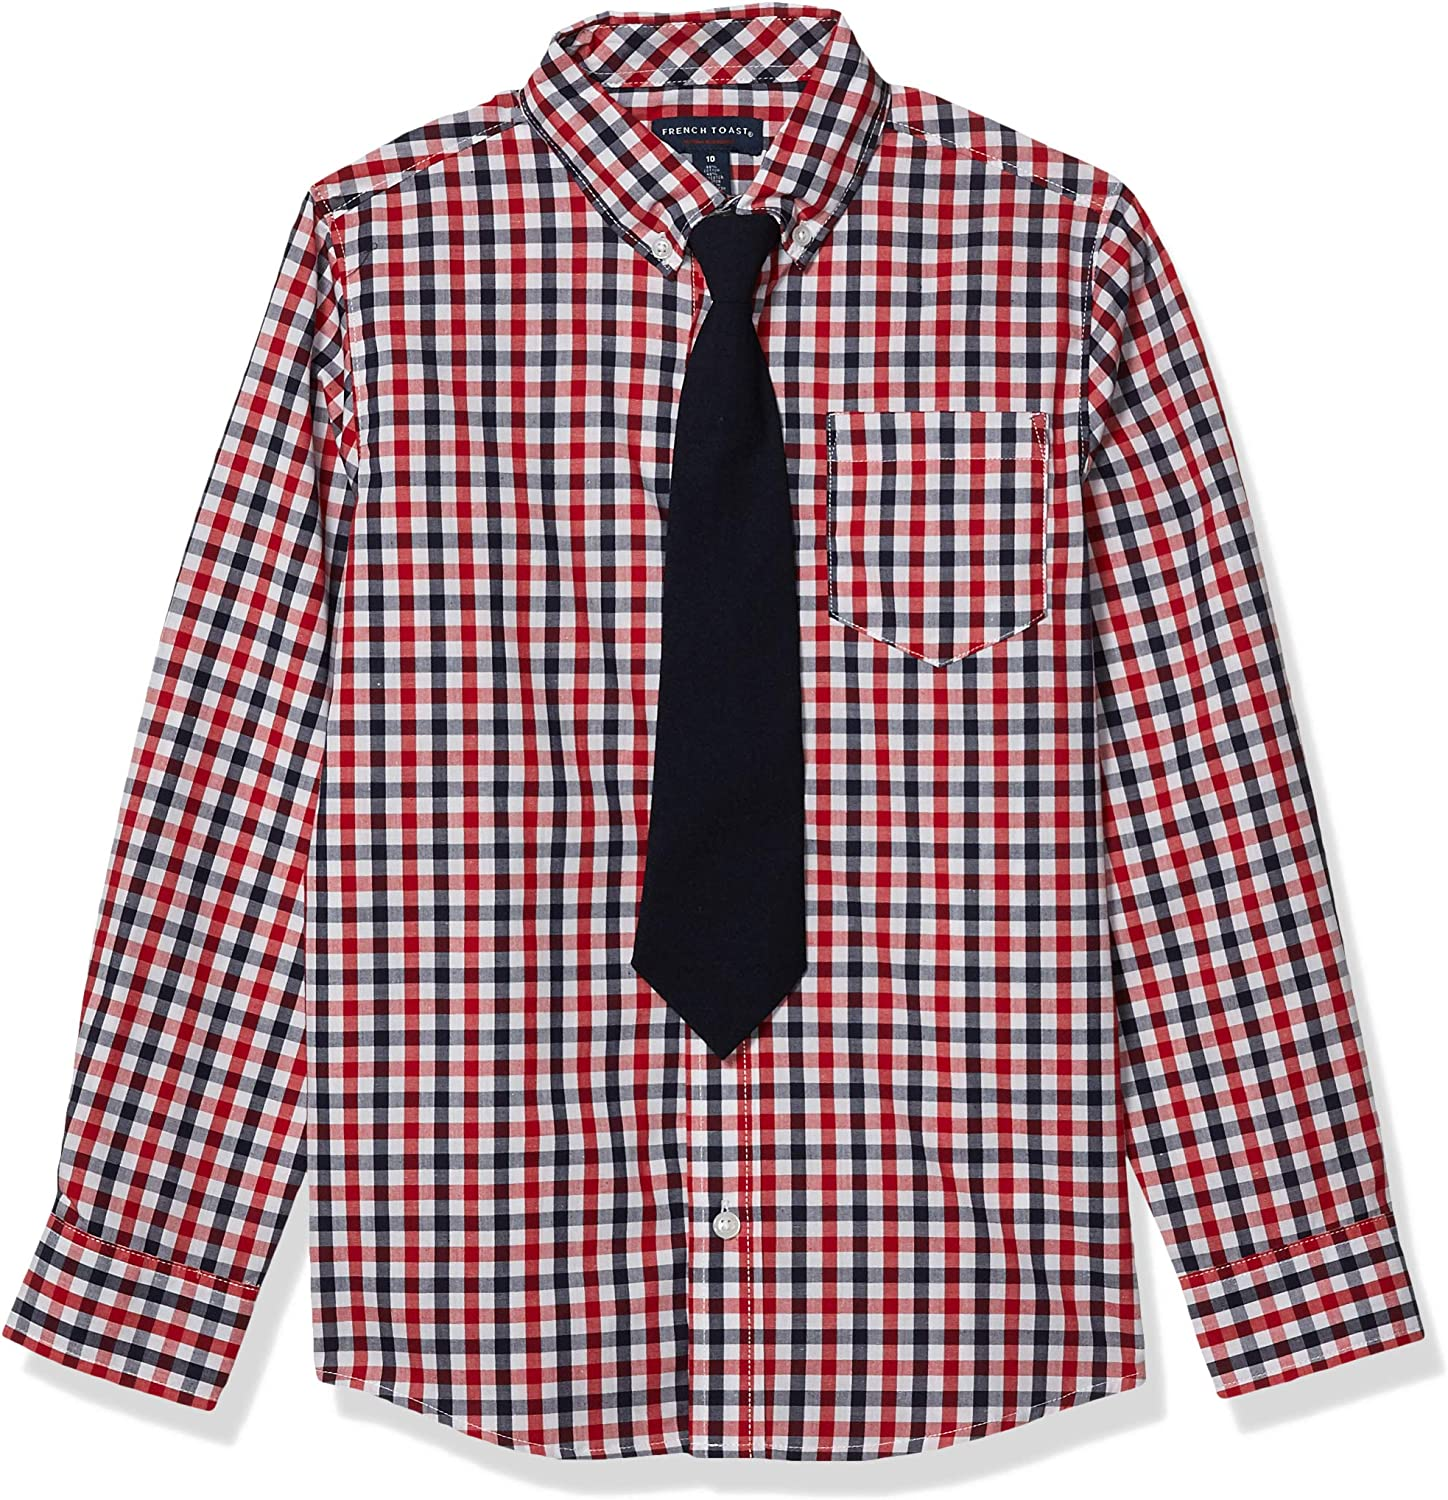 French Toast Max 48% OFF Boys' mart Long Sleeve Shirt with Dress Tie